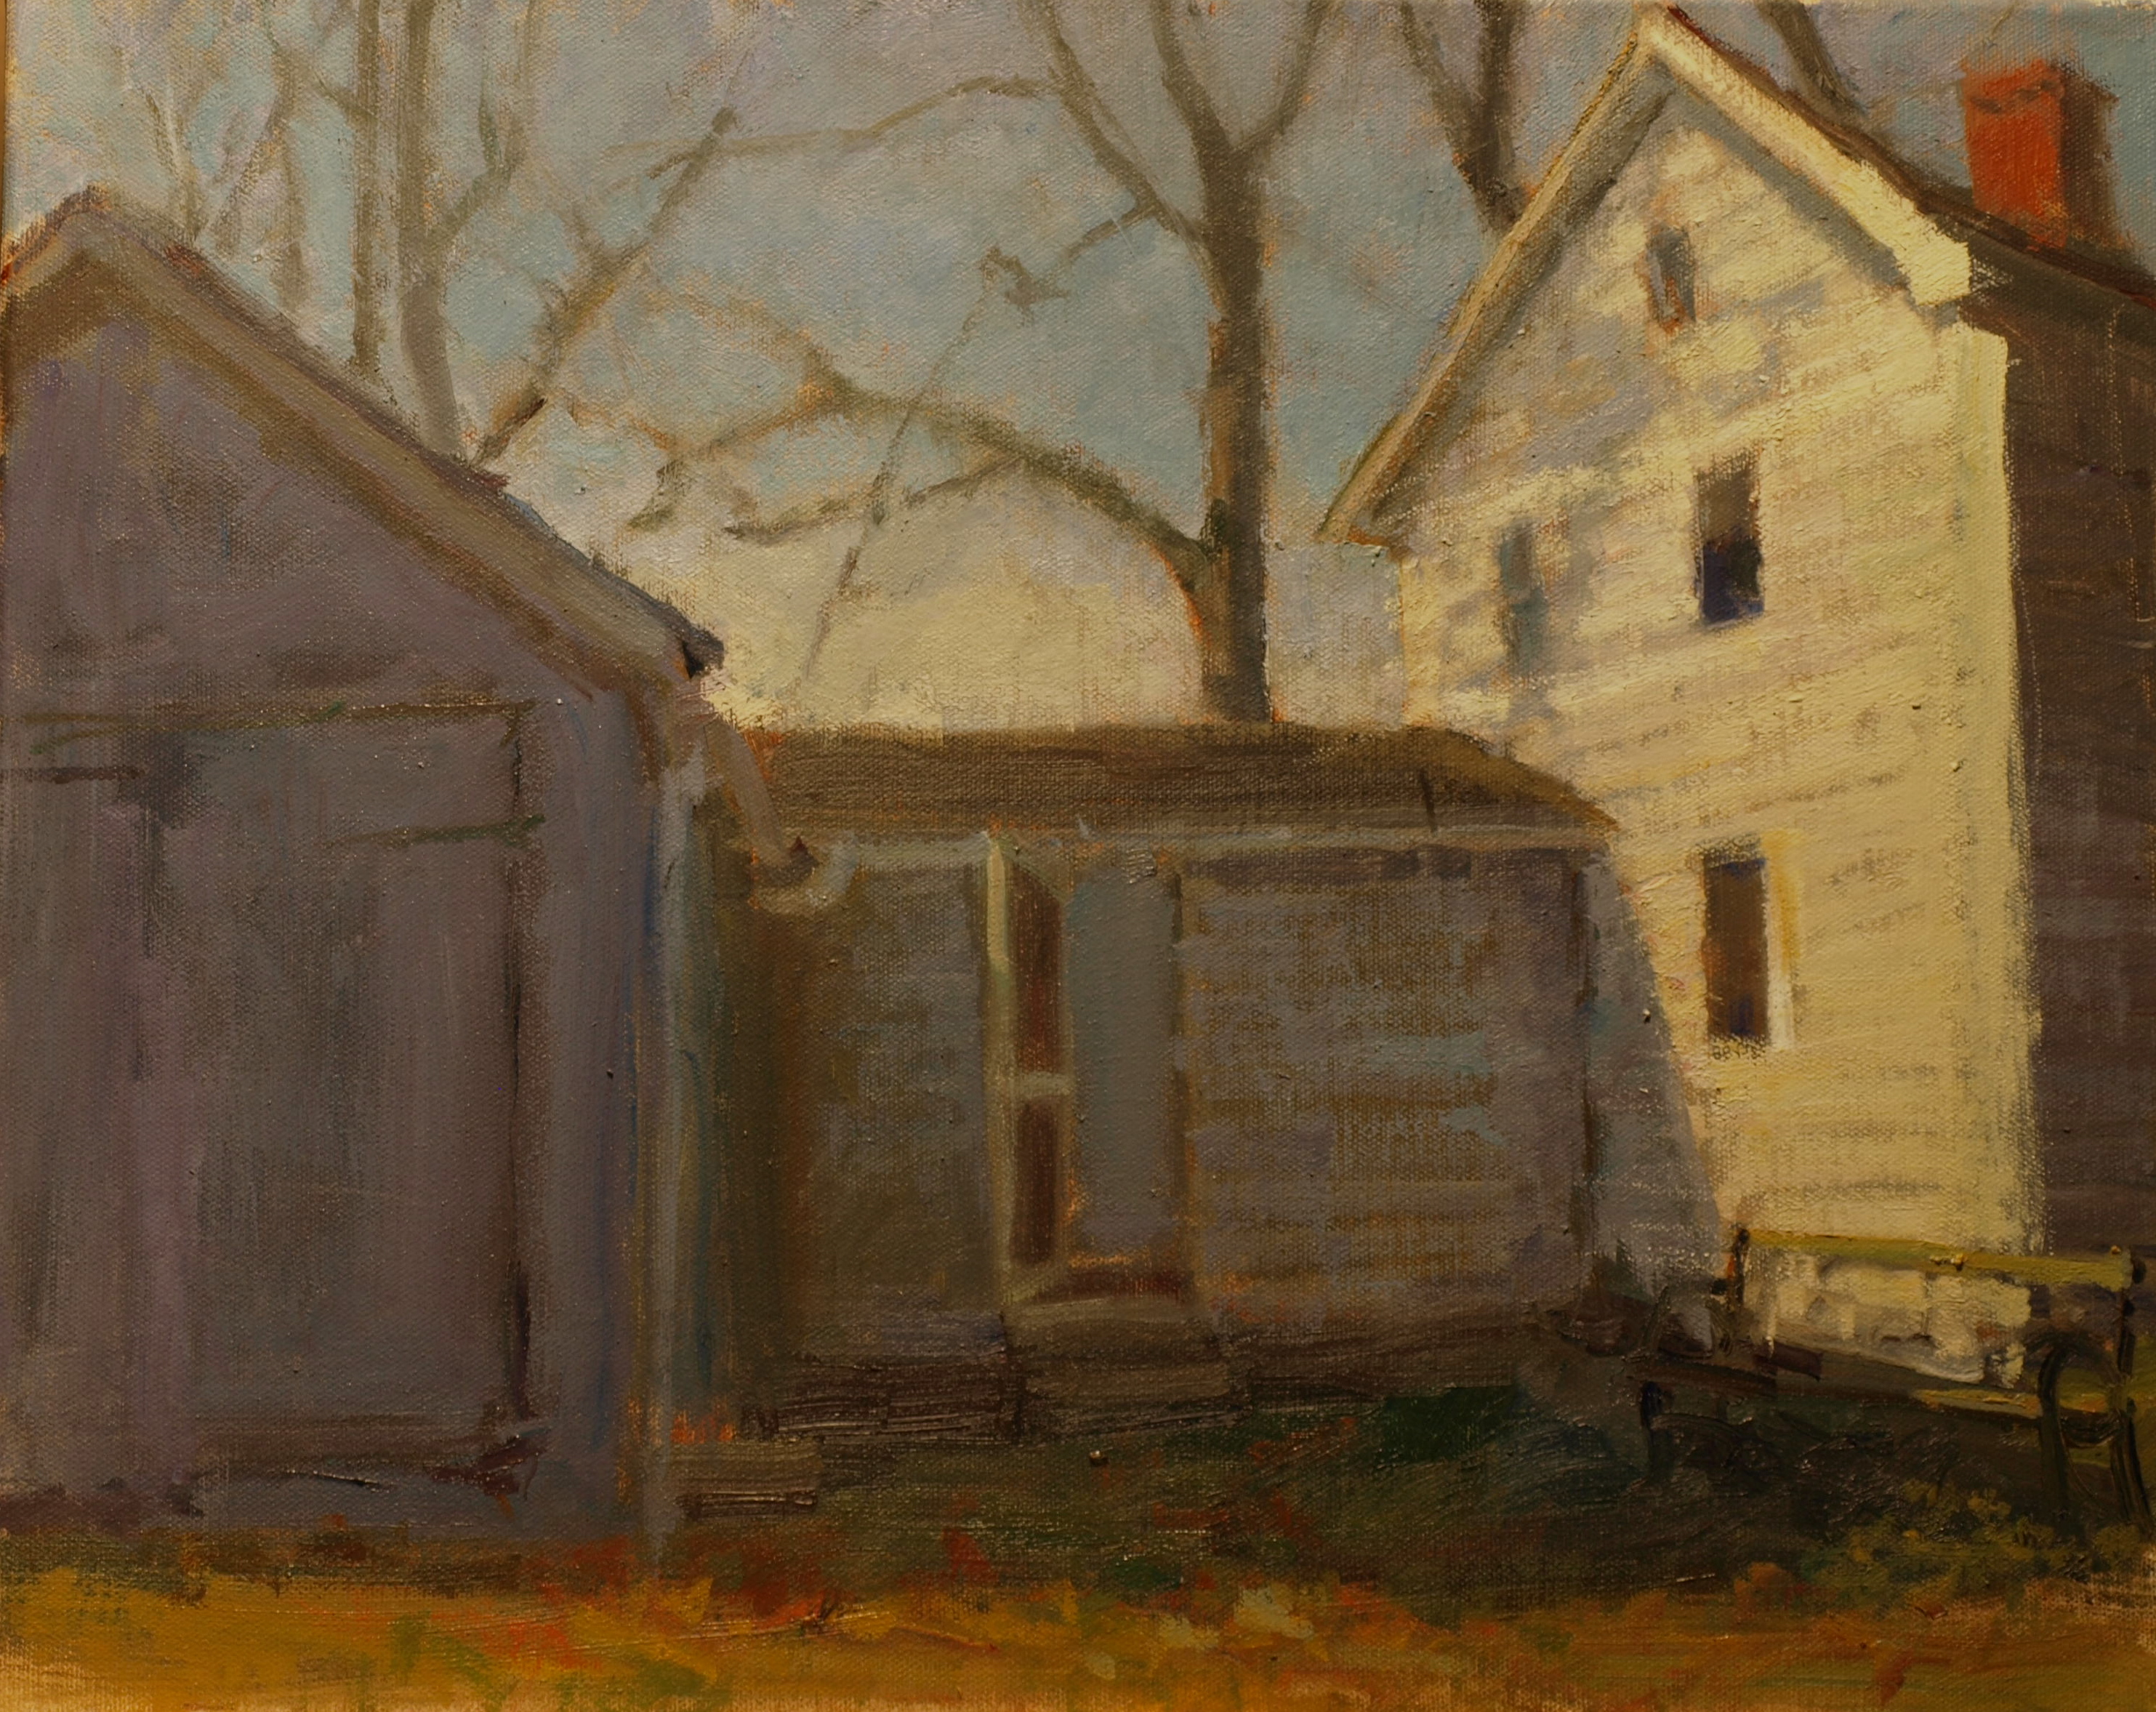 November, Oil on Canvas, 16 x 20 Inches, by Susan Grisell, $500